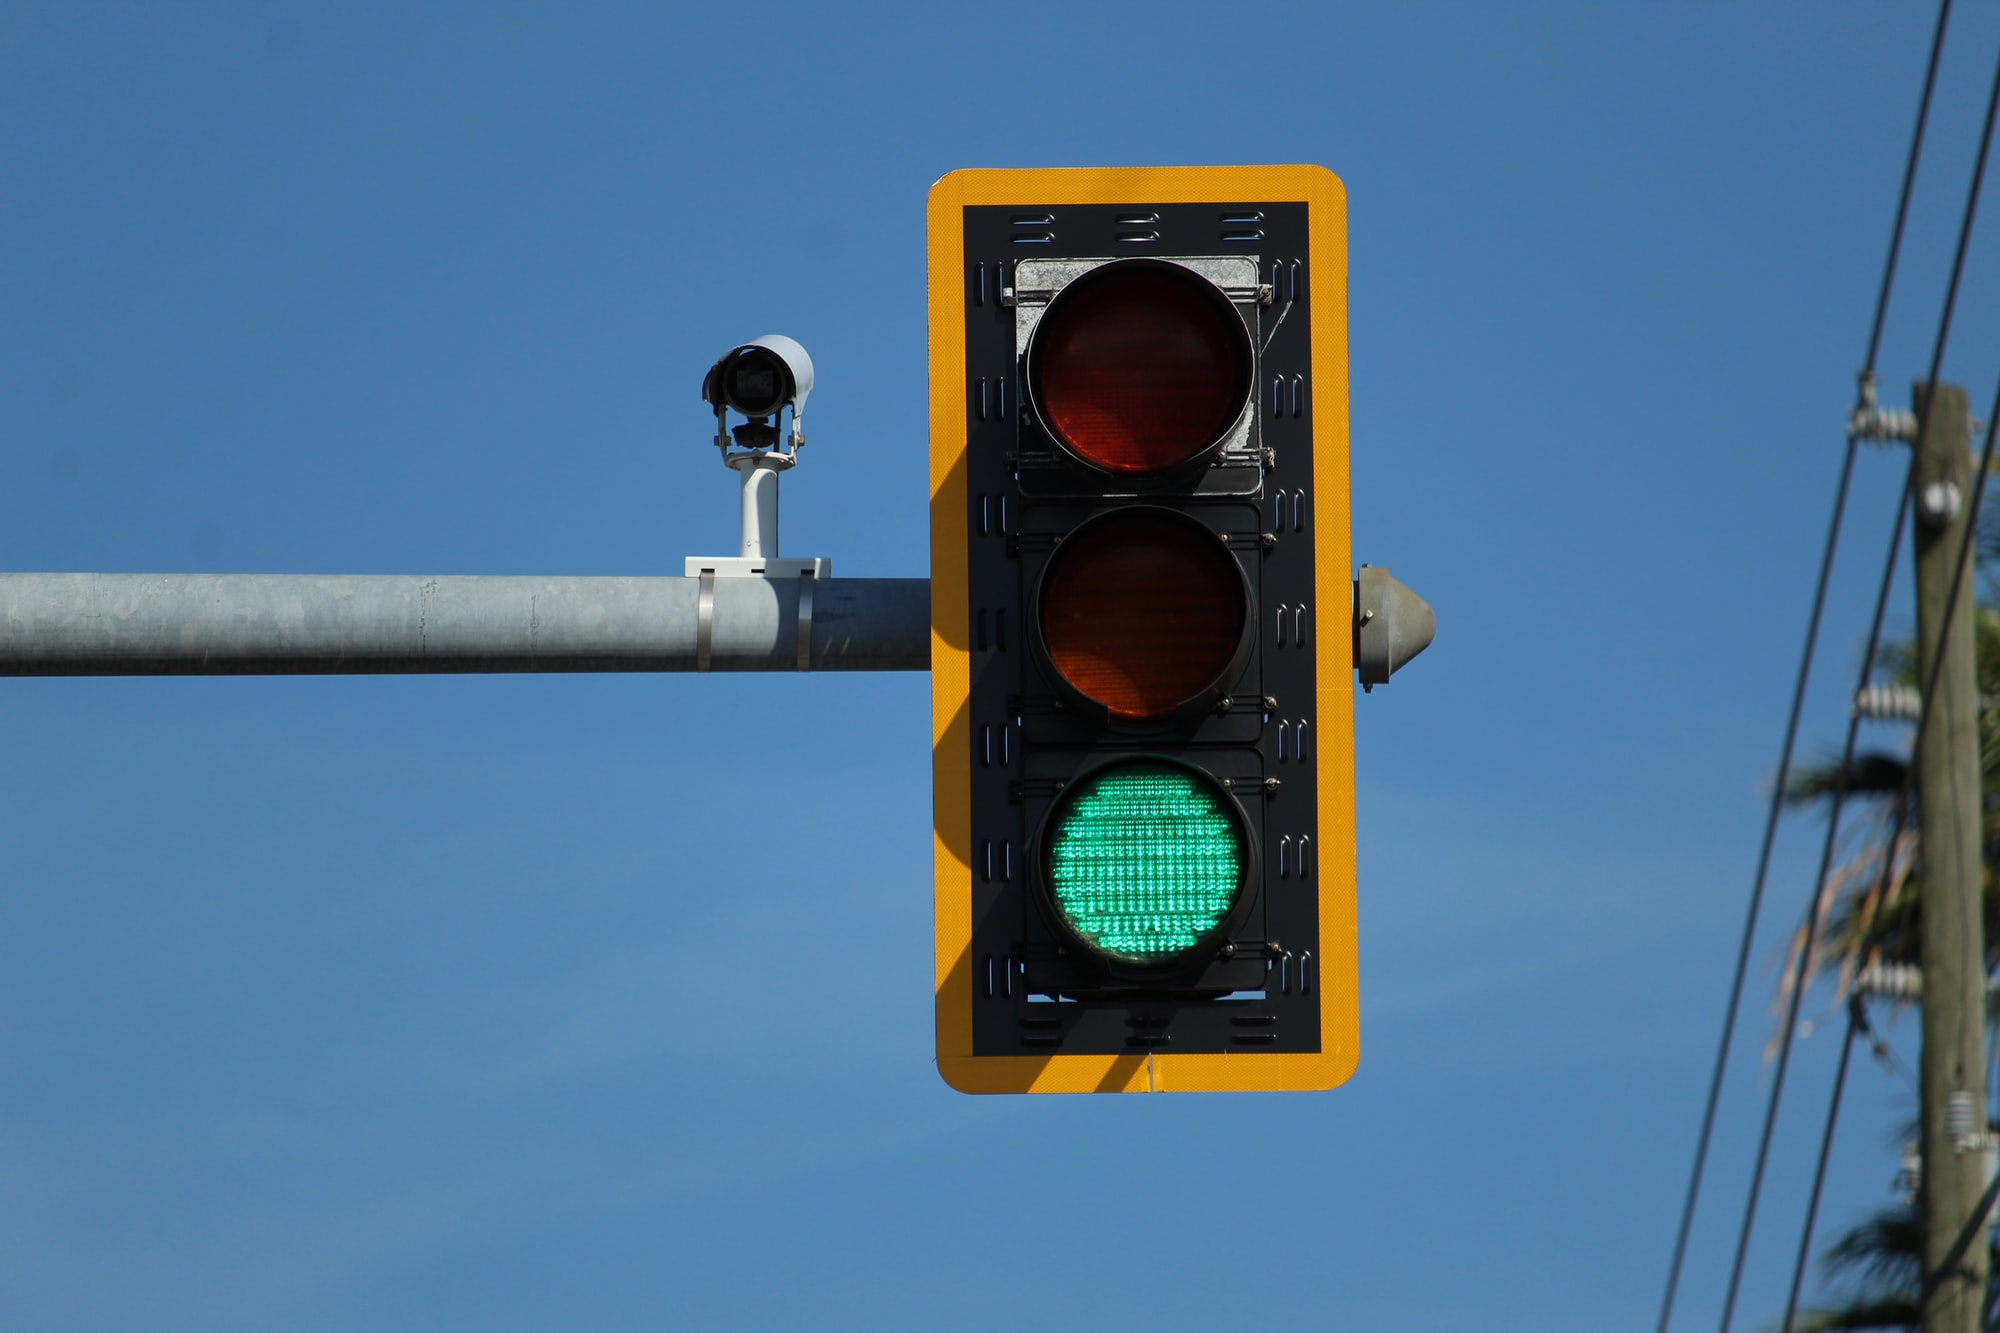 This Israeli startup wants AI to manage traffic lights